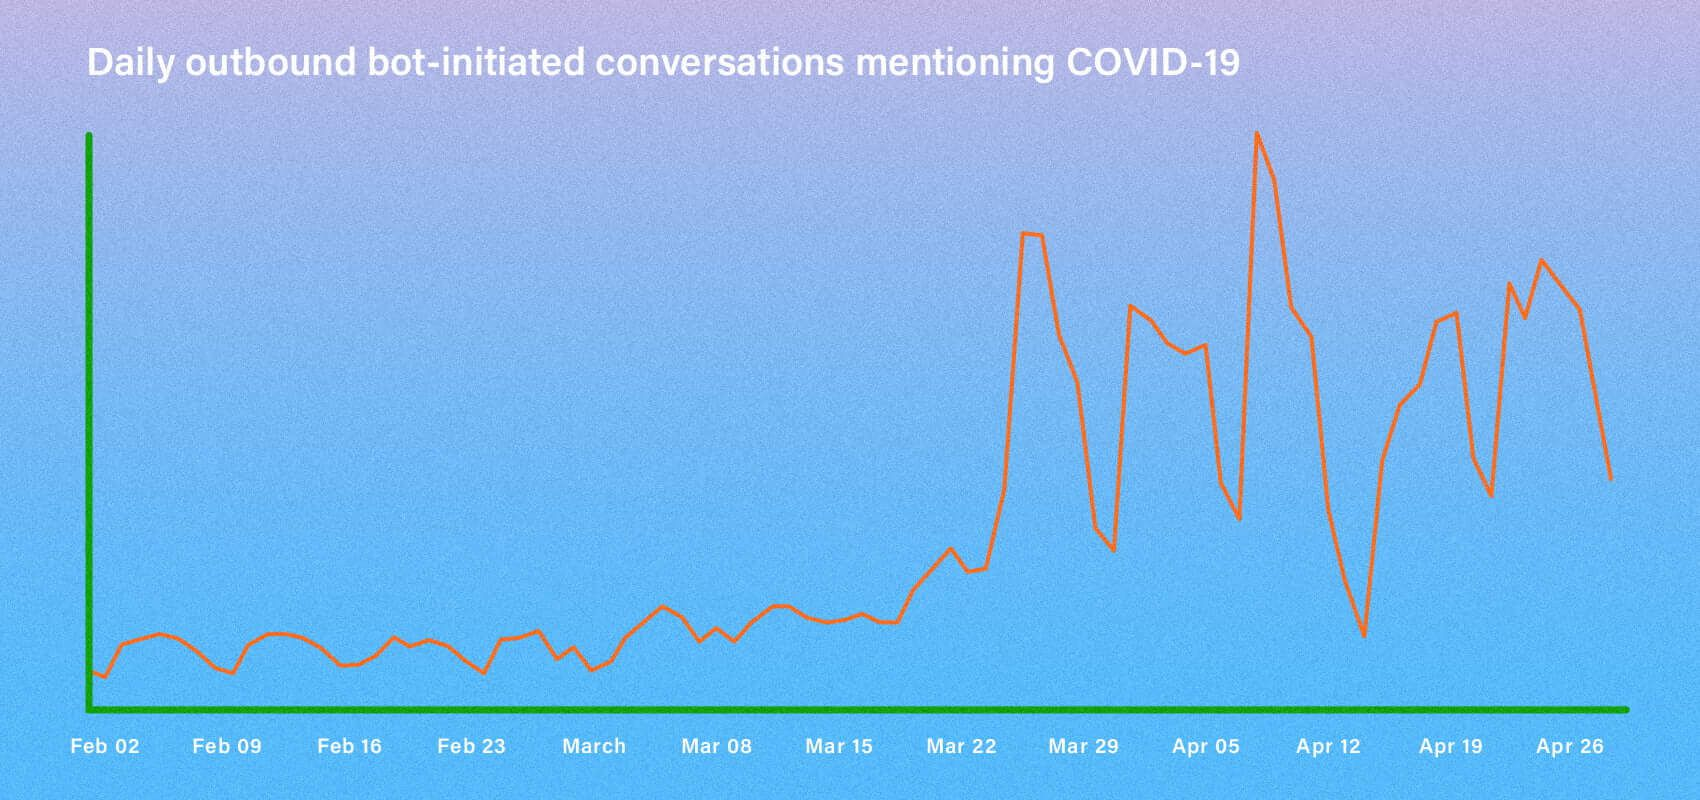 Daily outbound bot-initiated conversations mentioning COVID-19